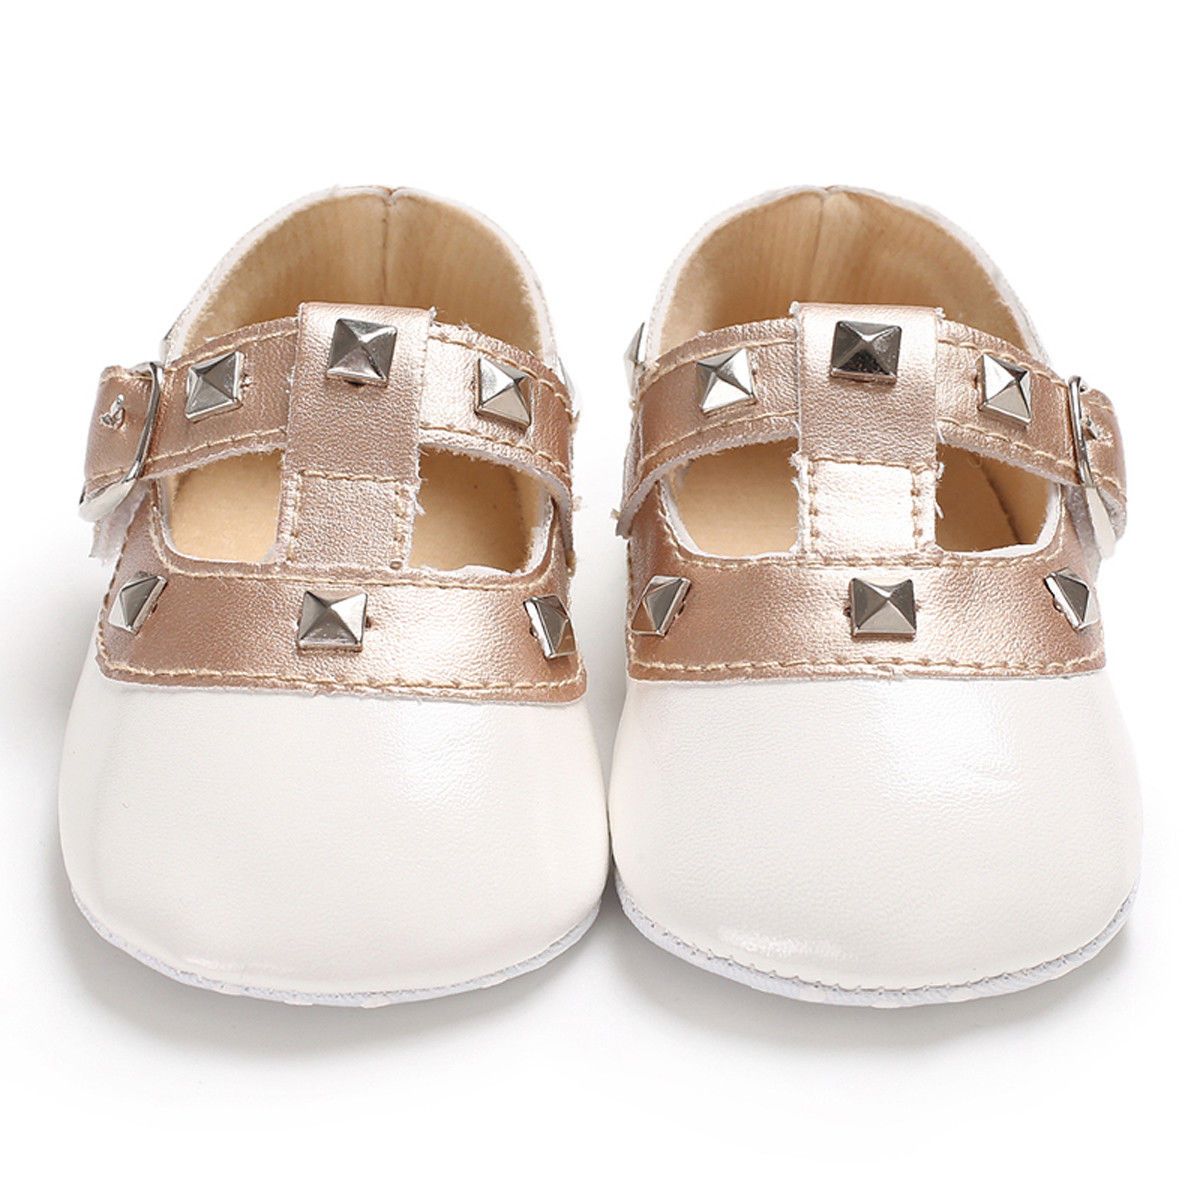 lovebabymammy.com 2020 Hot Boutique Newborn Baby Girls Shoes Bow Princess PU Leather Shoes Anti-slip Soft Sole Crib Sneaker Prewalker